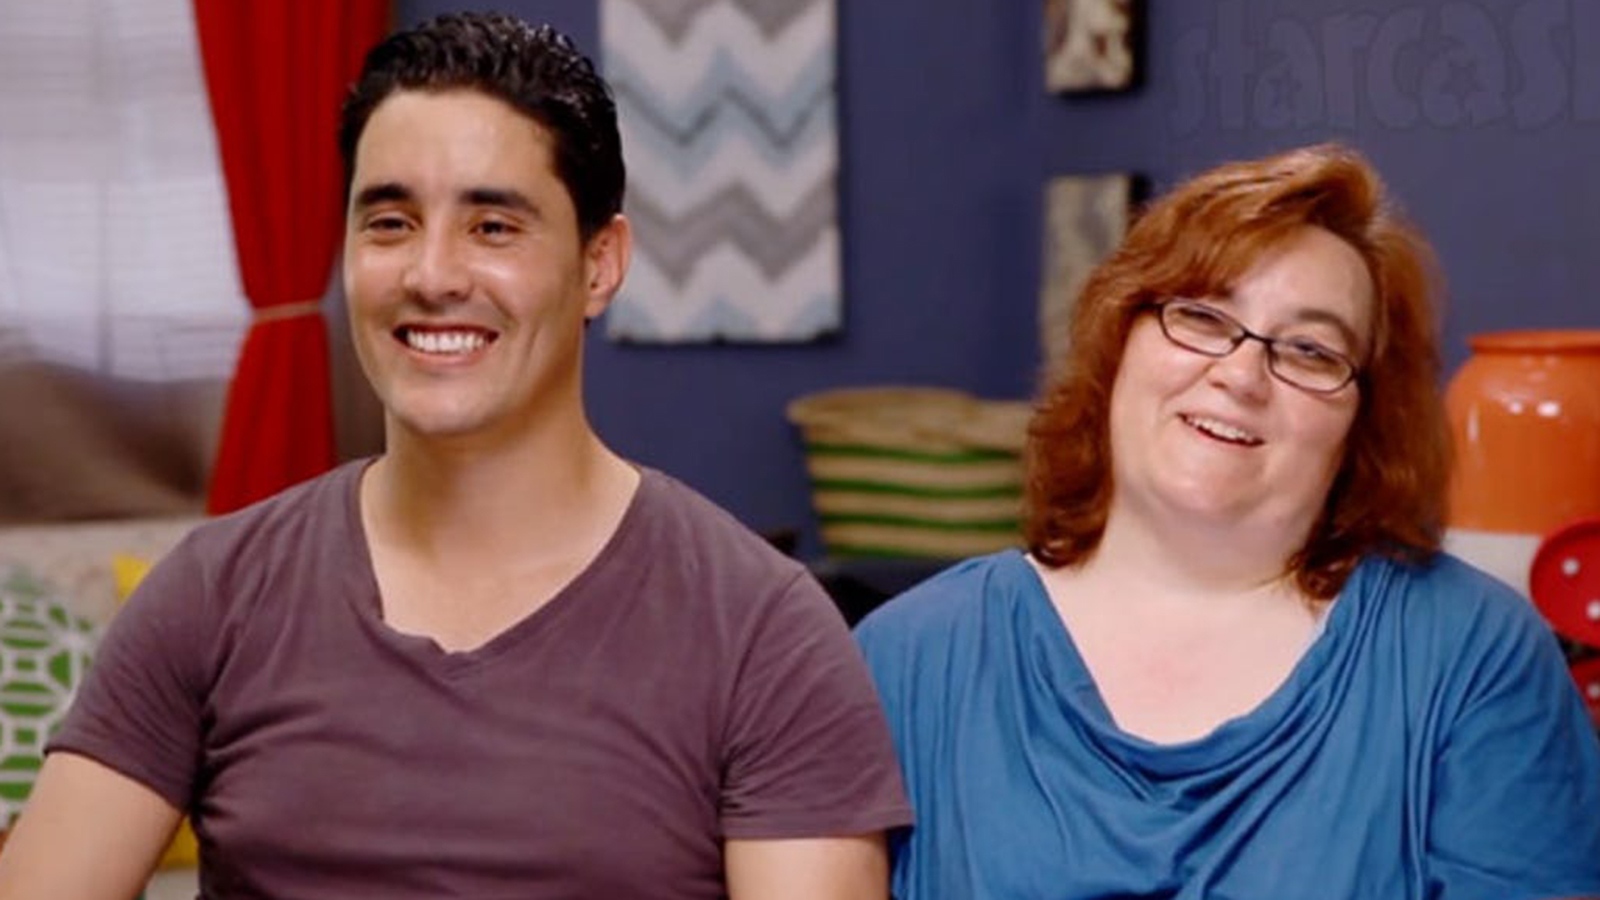 90 Day Fiance' Star Danielle Jbali Says Mohamed Could Possibly Be Deported After All